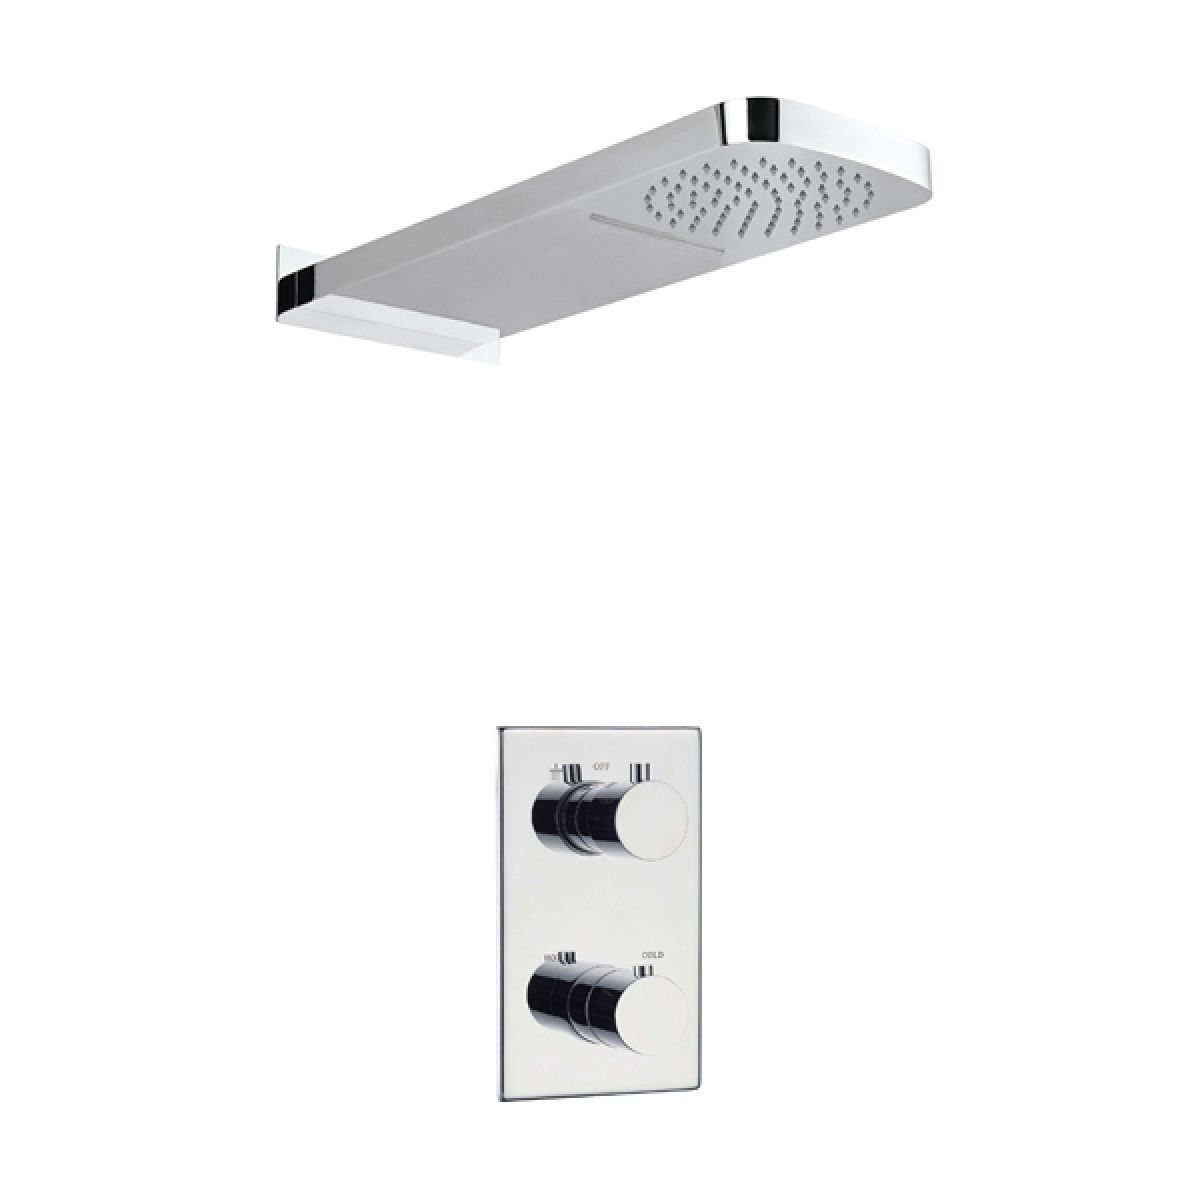 Frontline Slyde Triple Thermostatic Mixer Shower with Losan Head